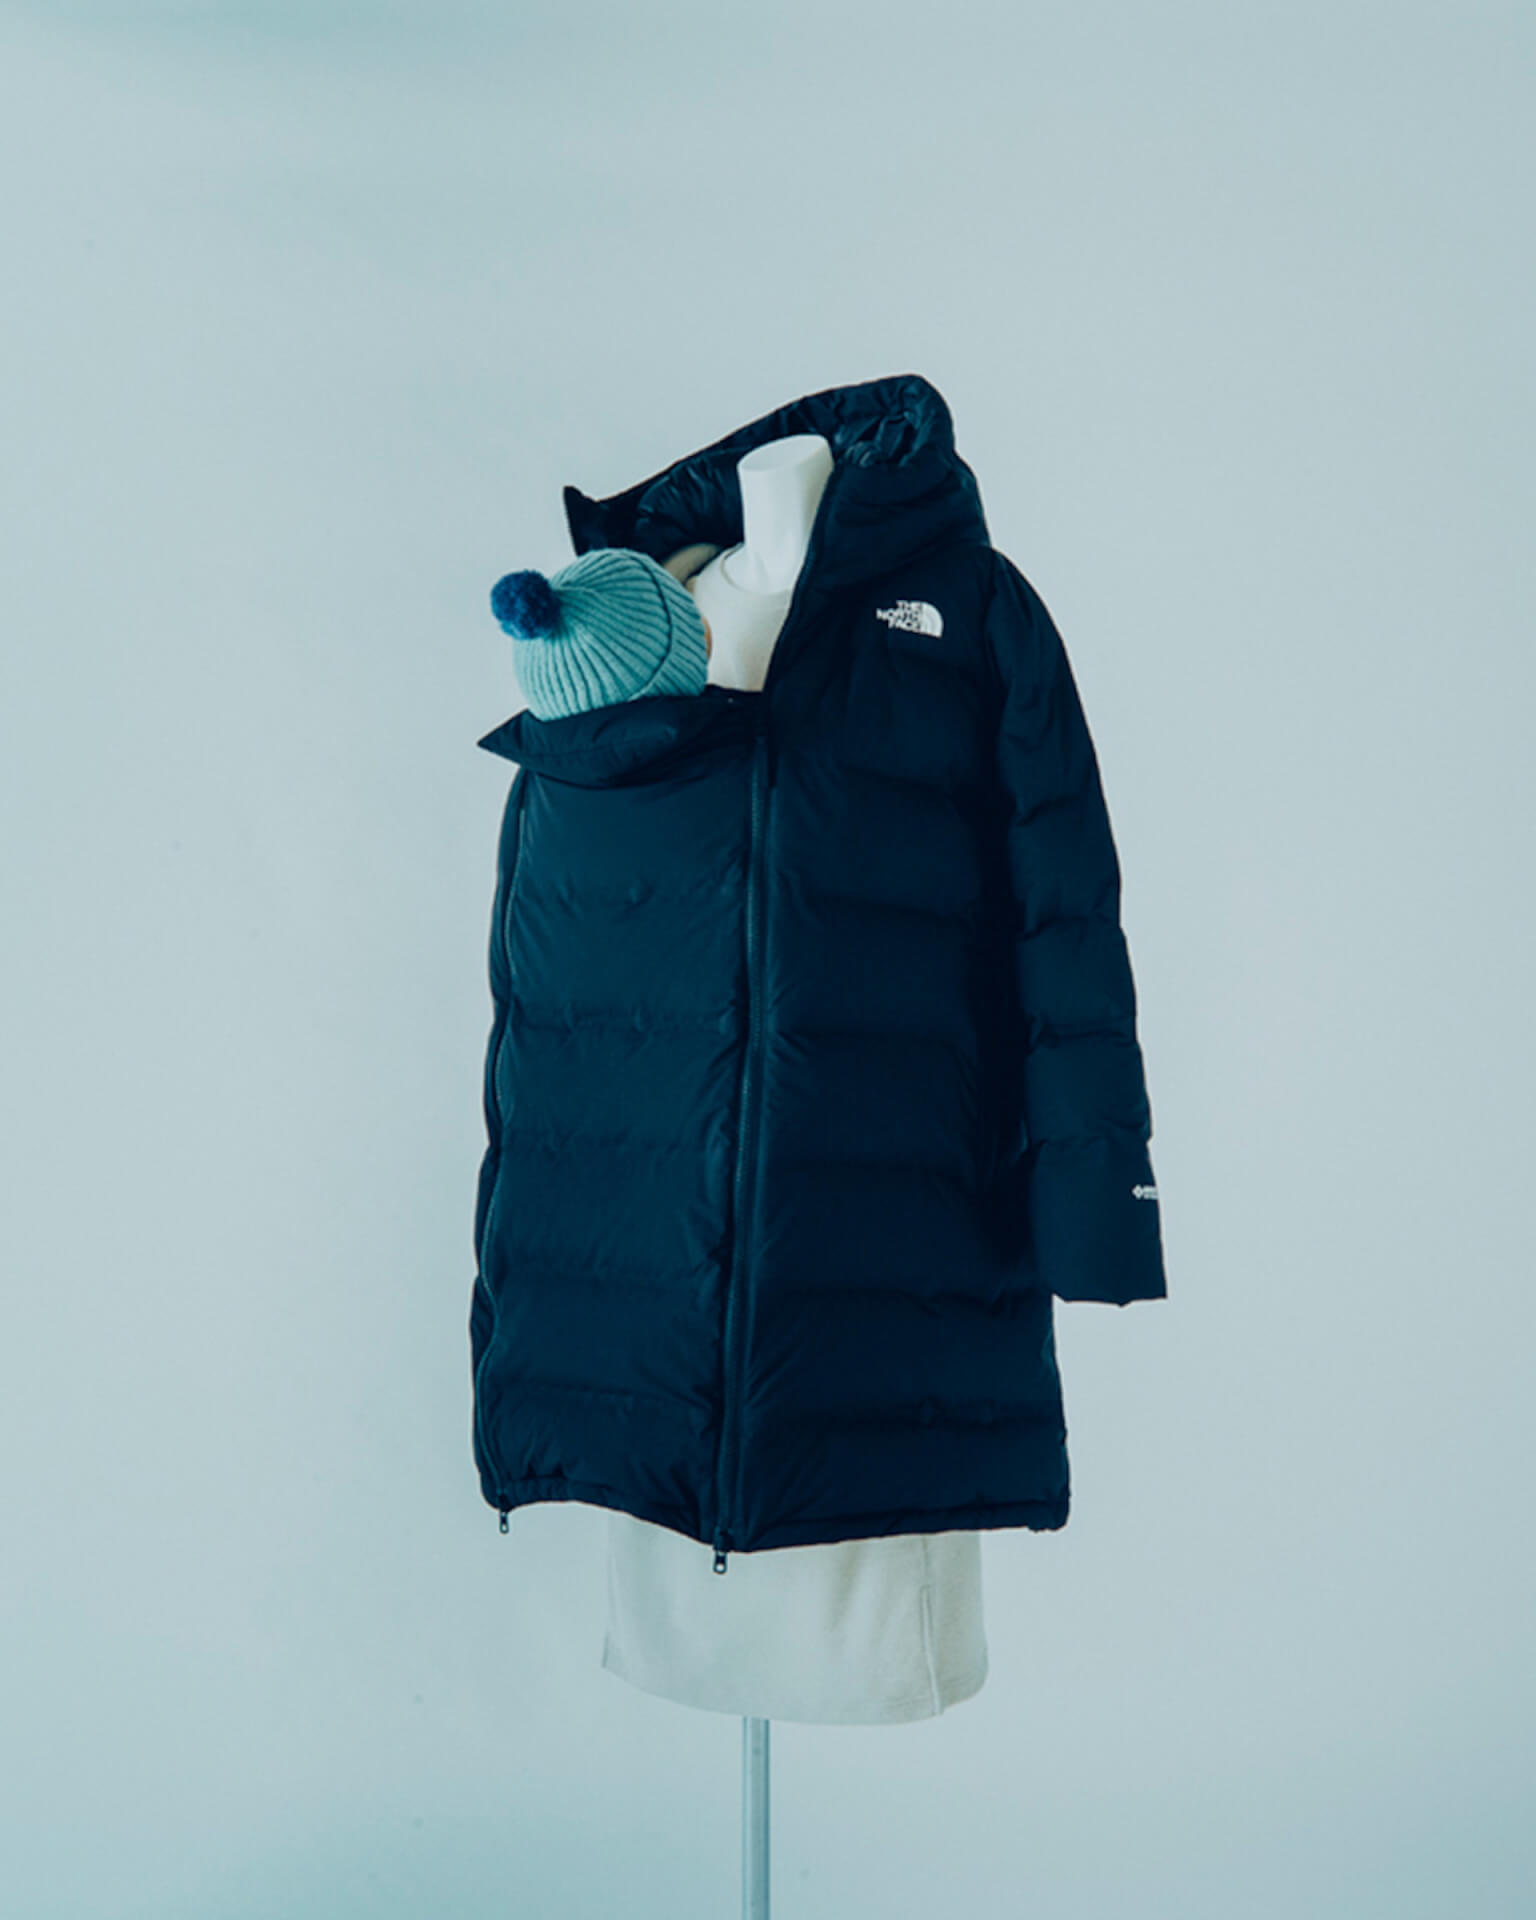 THE NORTH FACE、ママに優しい機能的マタニティウェアを6型展開で発売 life191007_thenorthface_1